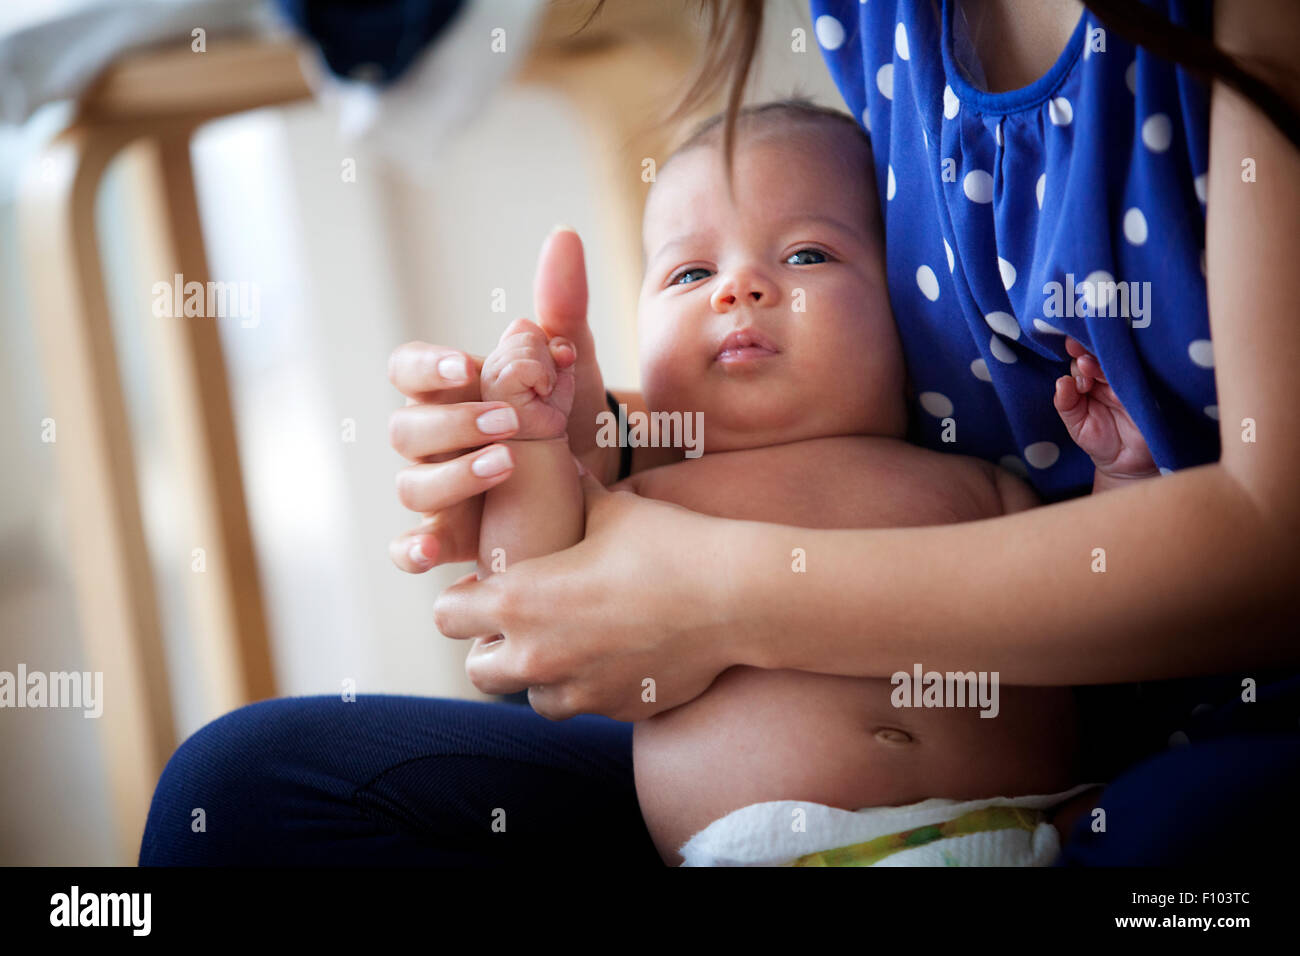 INFANT BEING MASSAGED - Stock Image